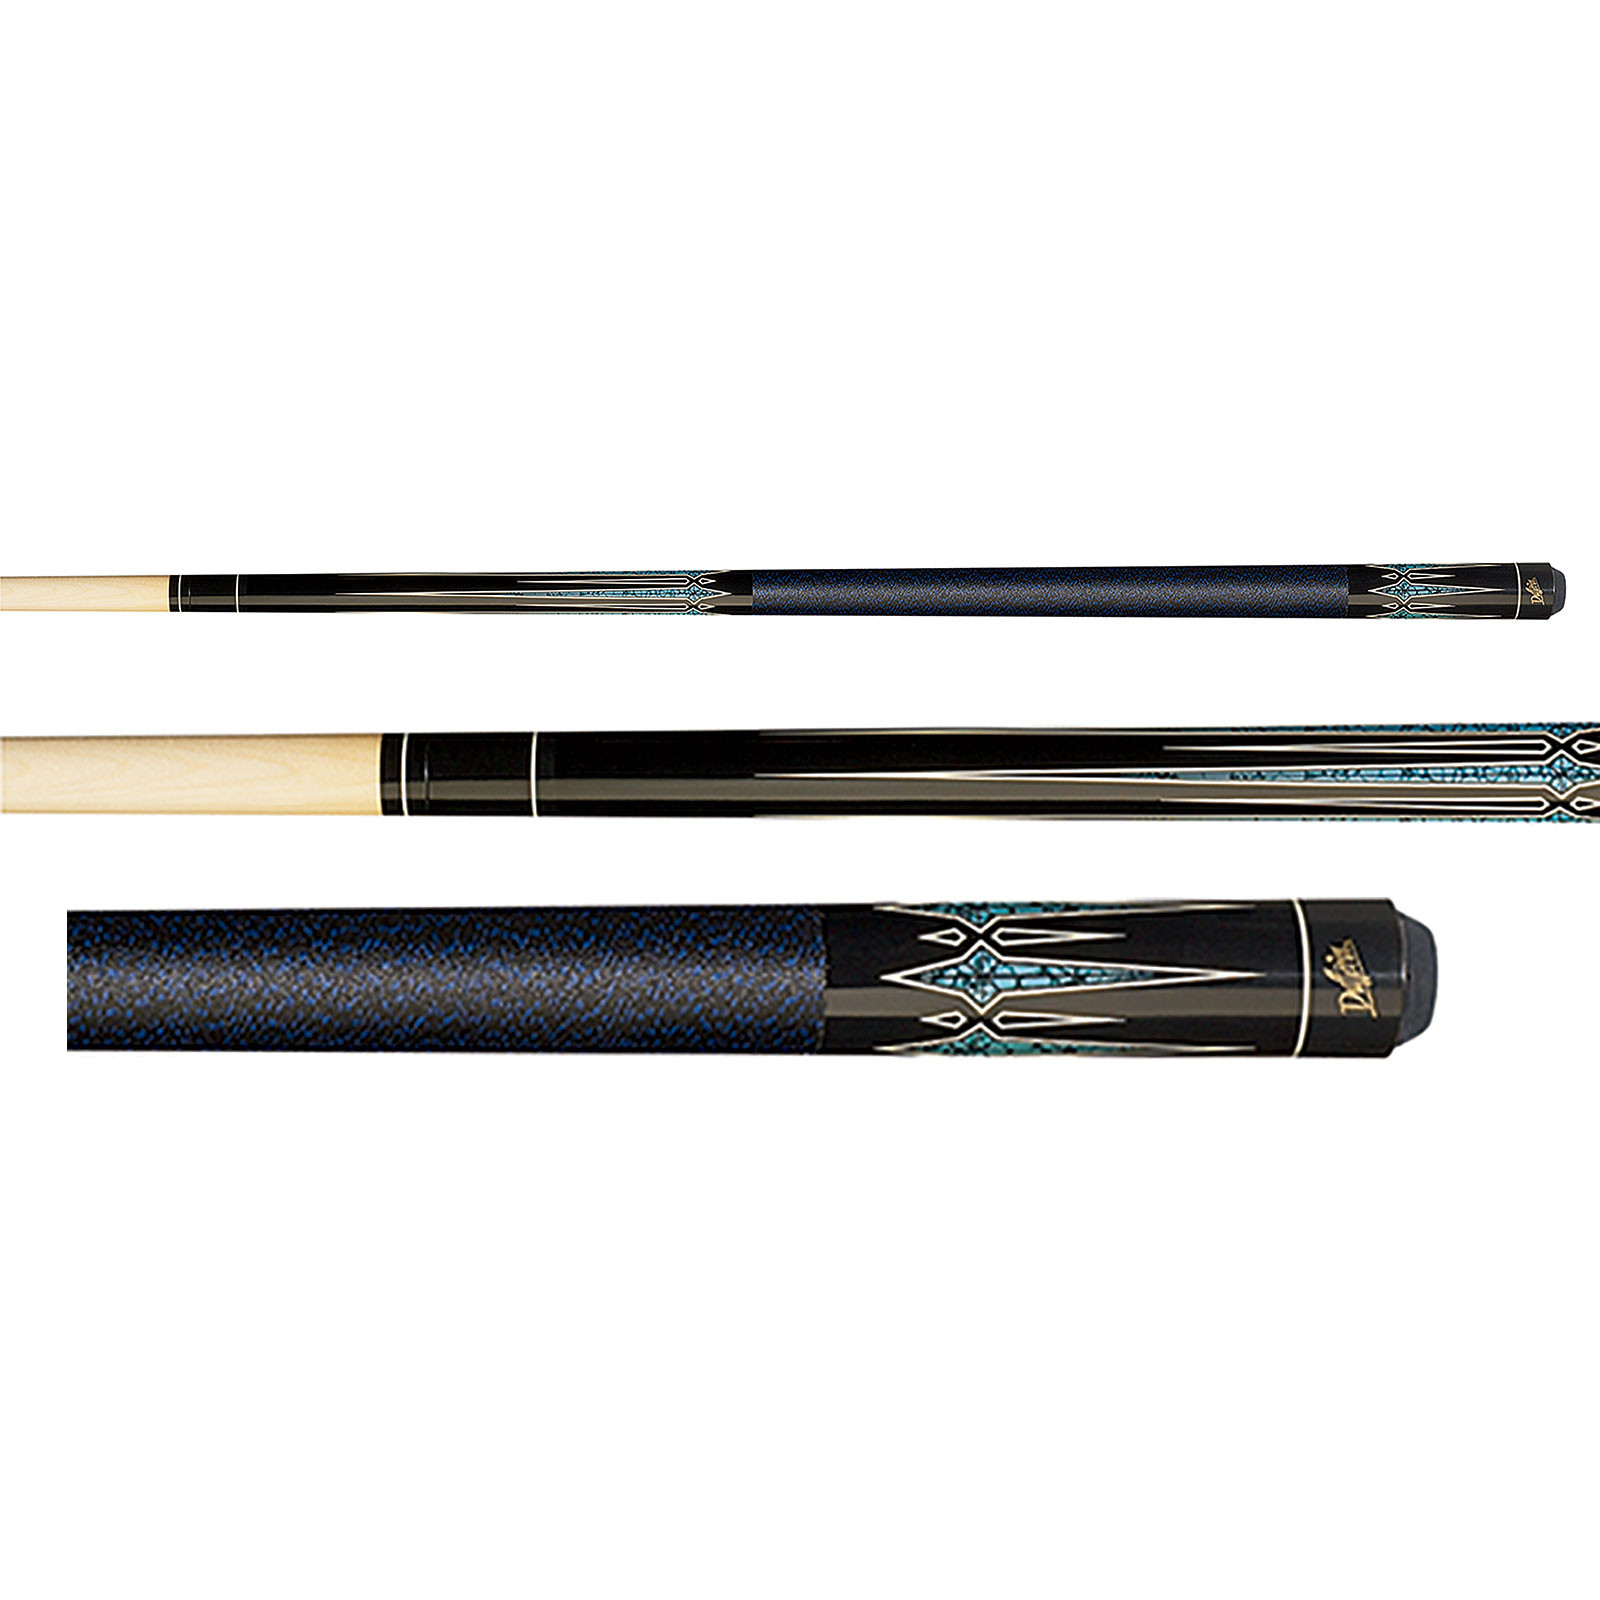 Dufferin D-312 Black Pool Cue Stick